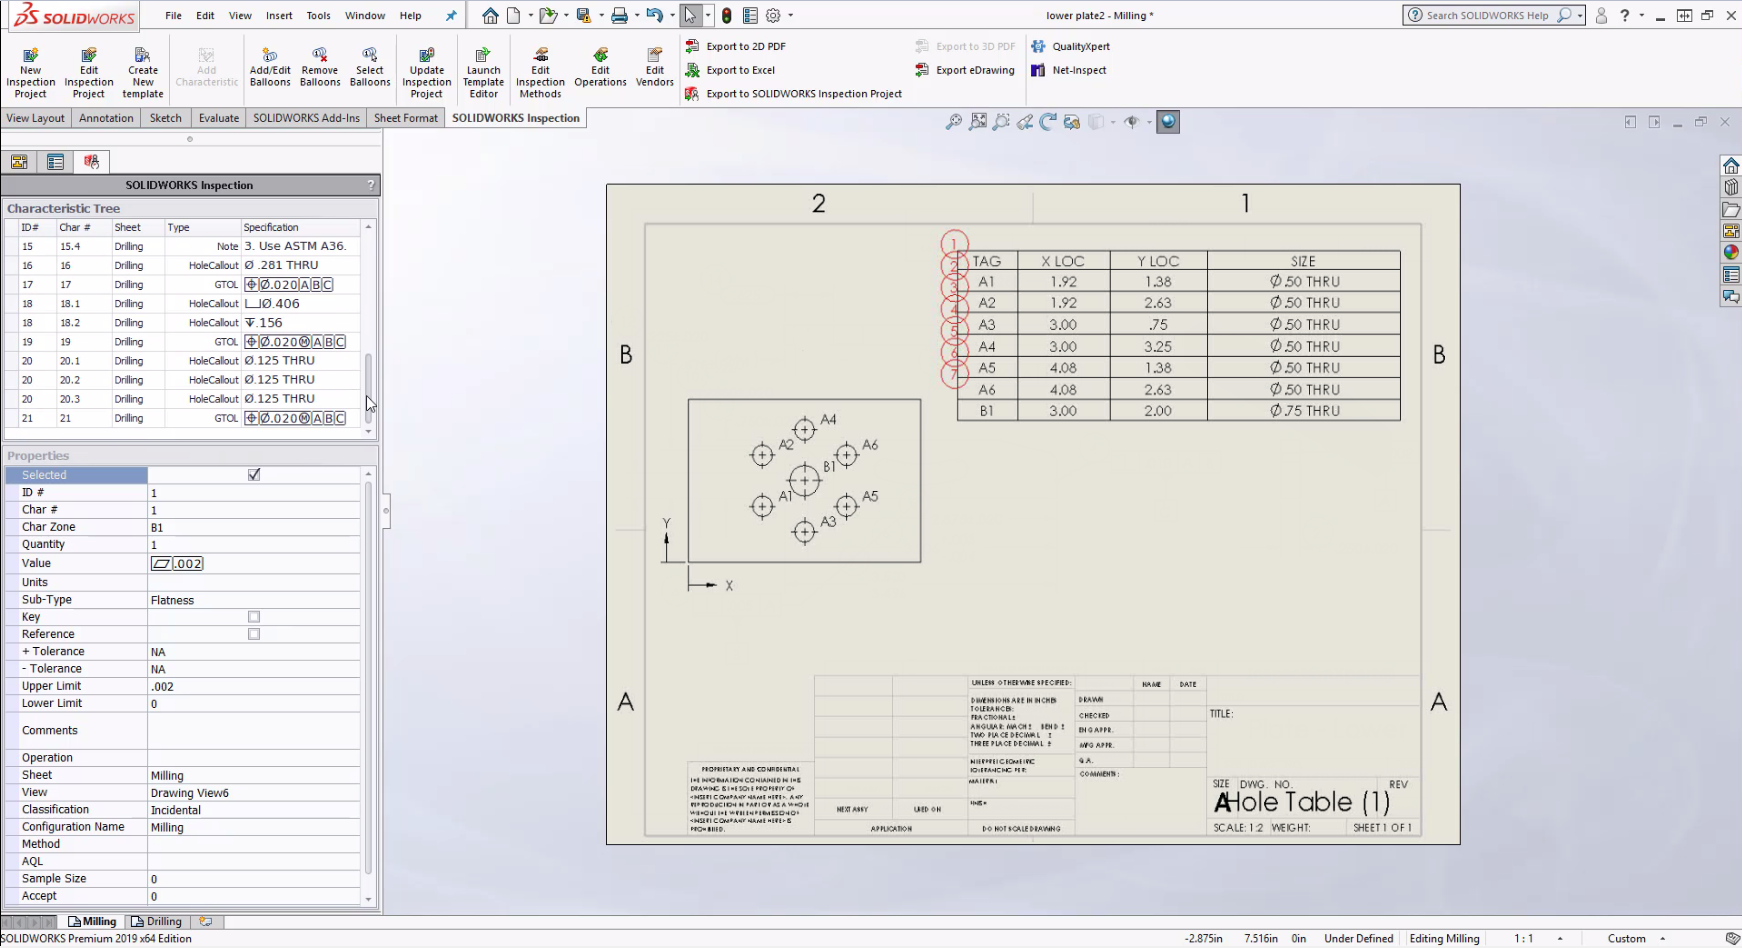 Increased productivity and flexibility with SOLIDWORKS Inspection